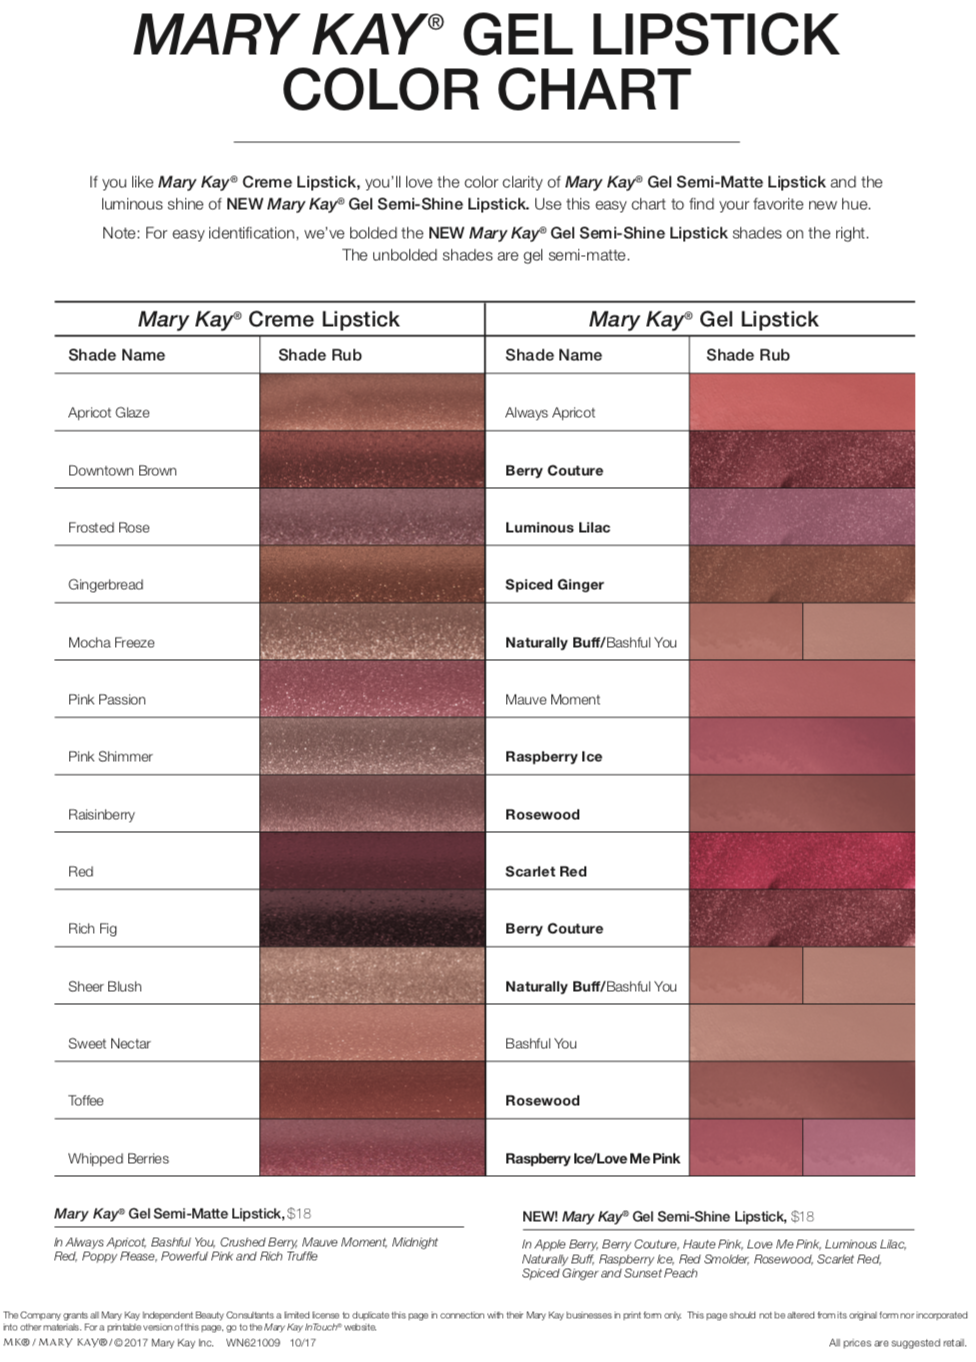 Wondering Which Gel Lipstick To Choose Use This Chart To Match Your Favorite Creme Lipstick To The New Mary Kay Creme Lipstick Mary Kay Lipstick Mary Kay Sale